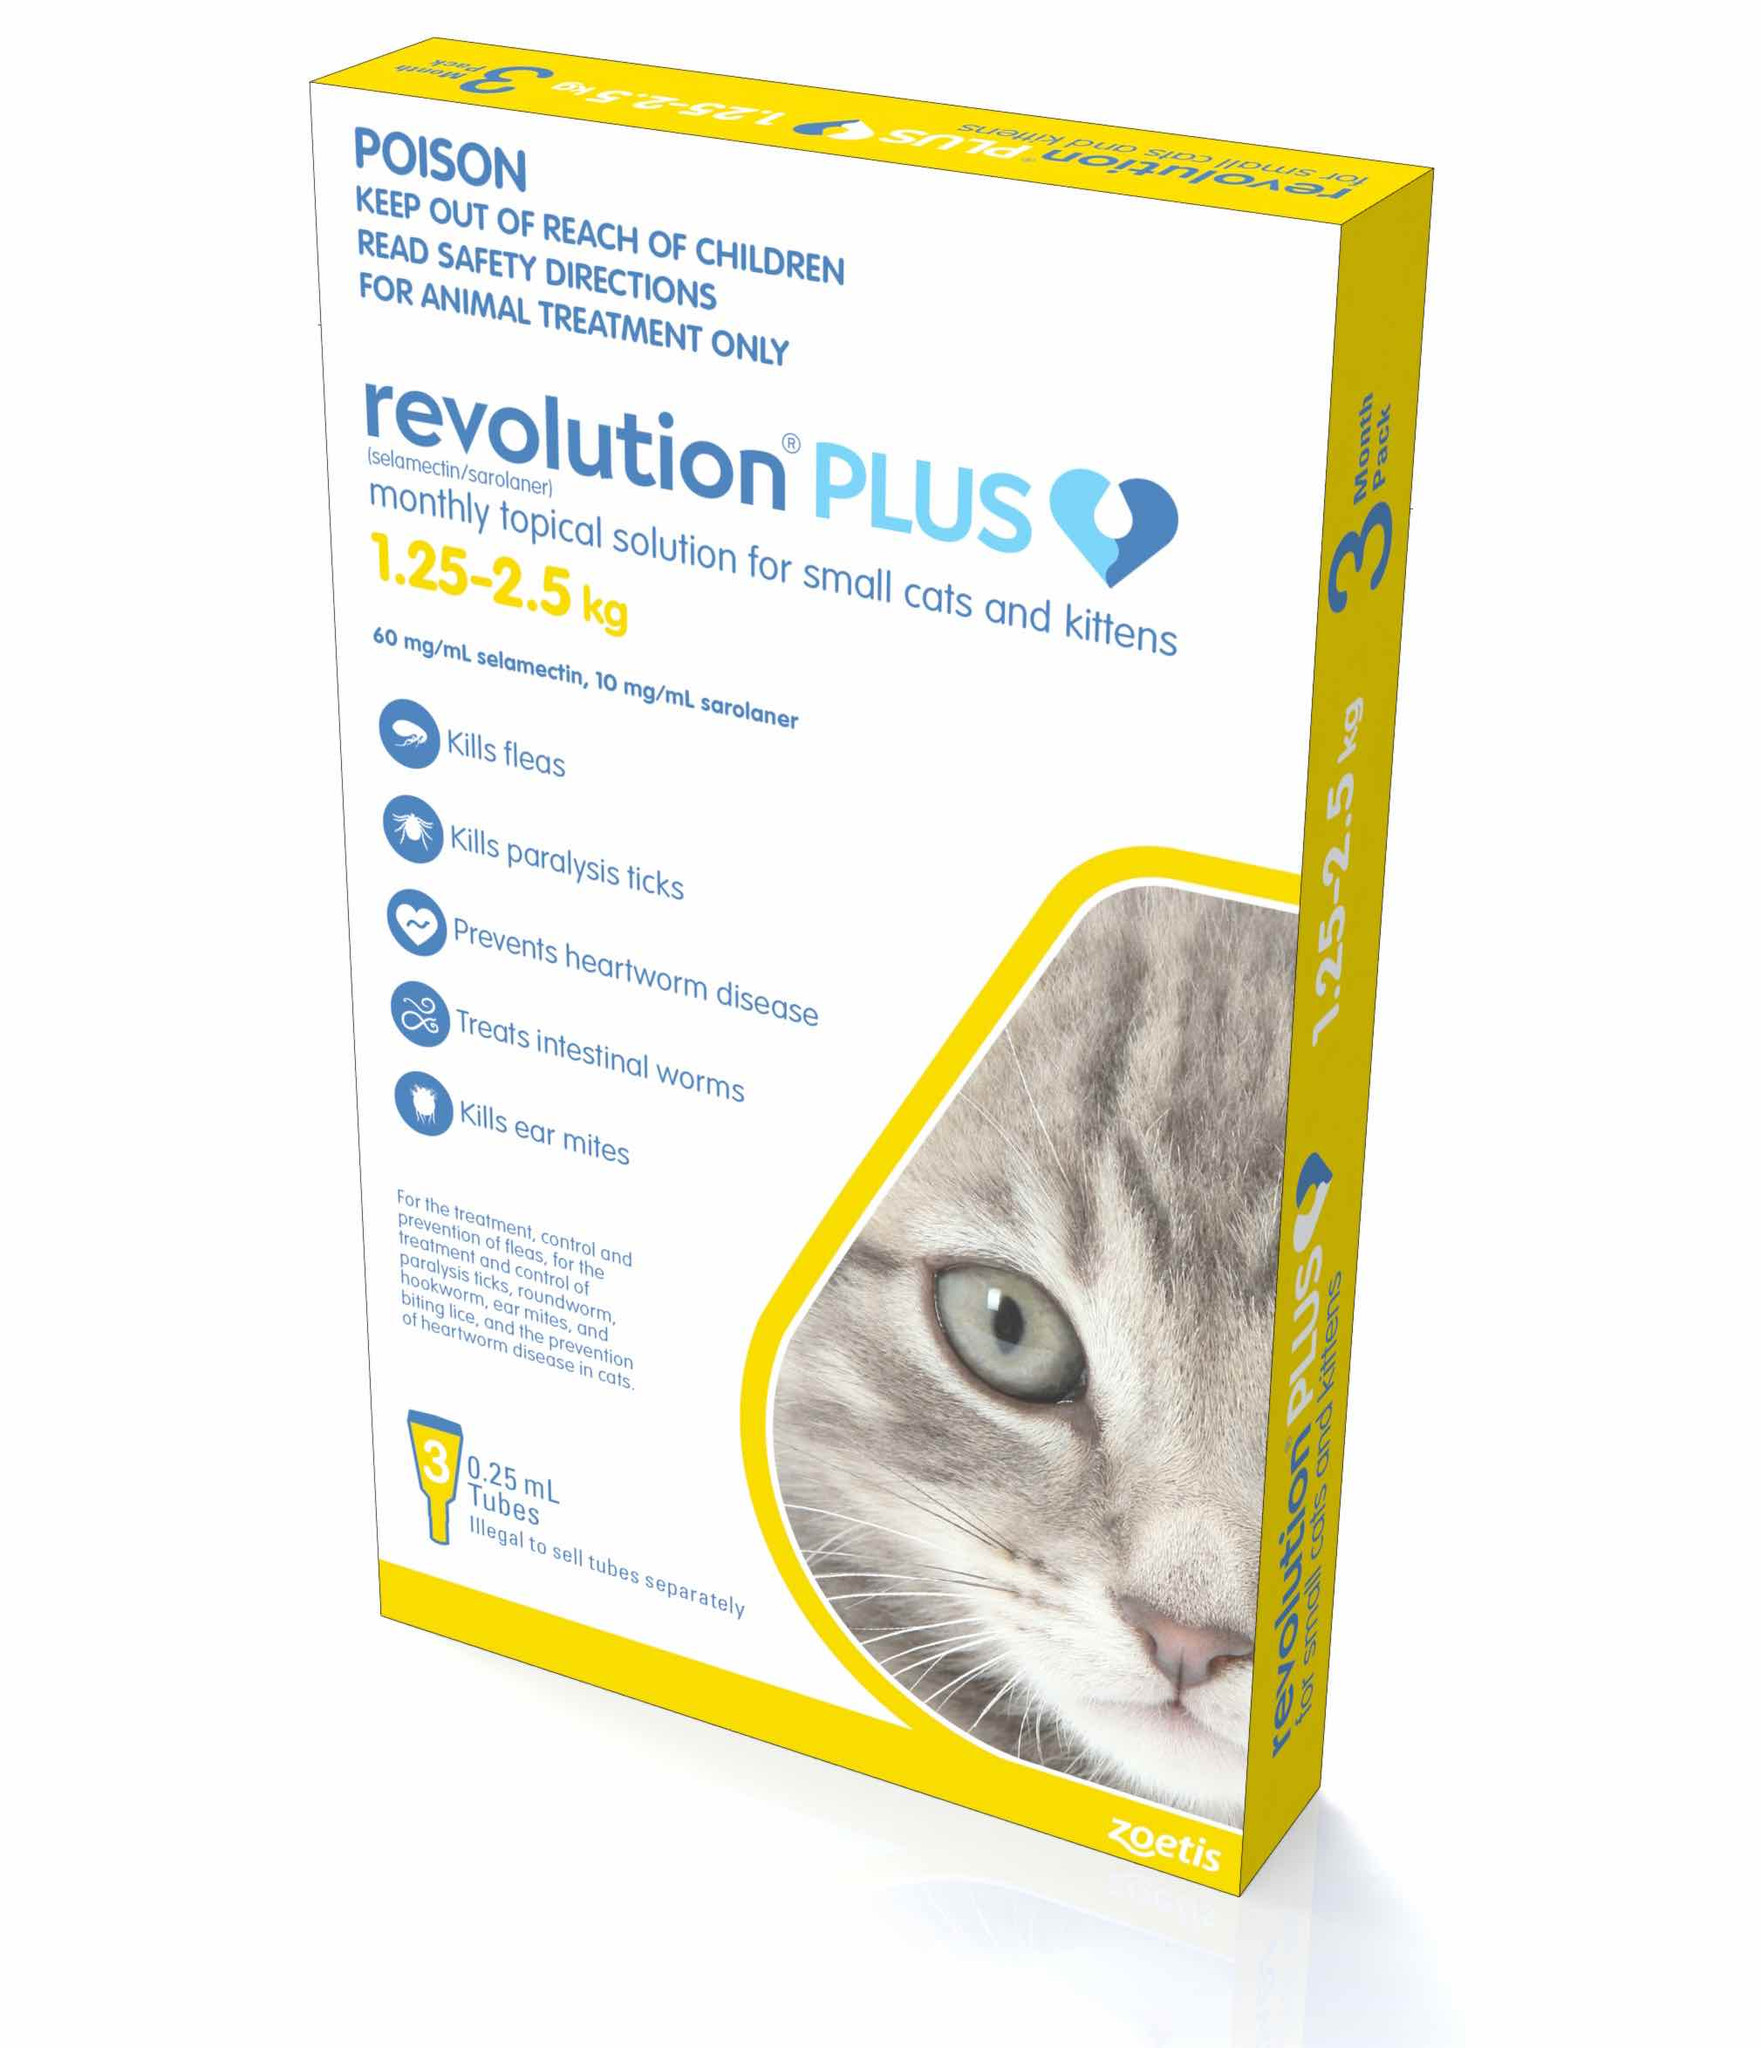 Revolution Plus For Kittens And Small Cats 1 25 2 5kg Gold 3 Doses Pacific Pet Supplies Australia